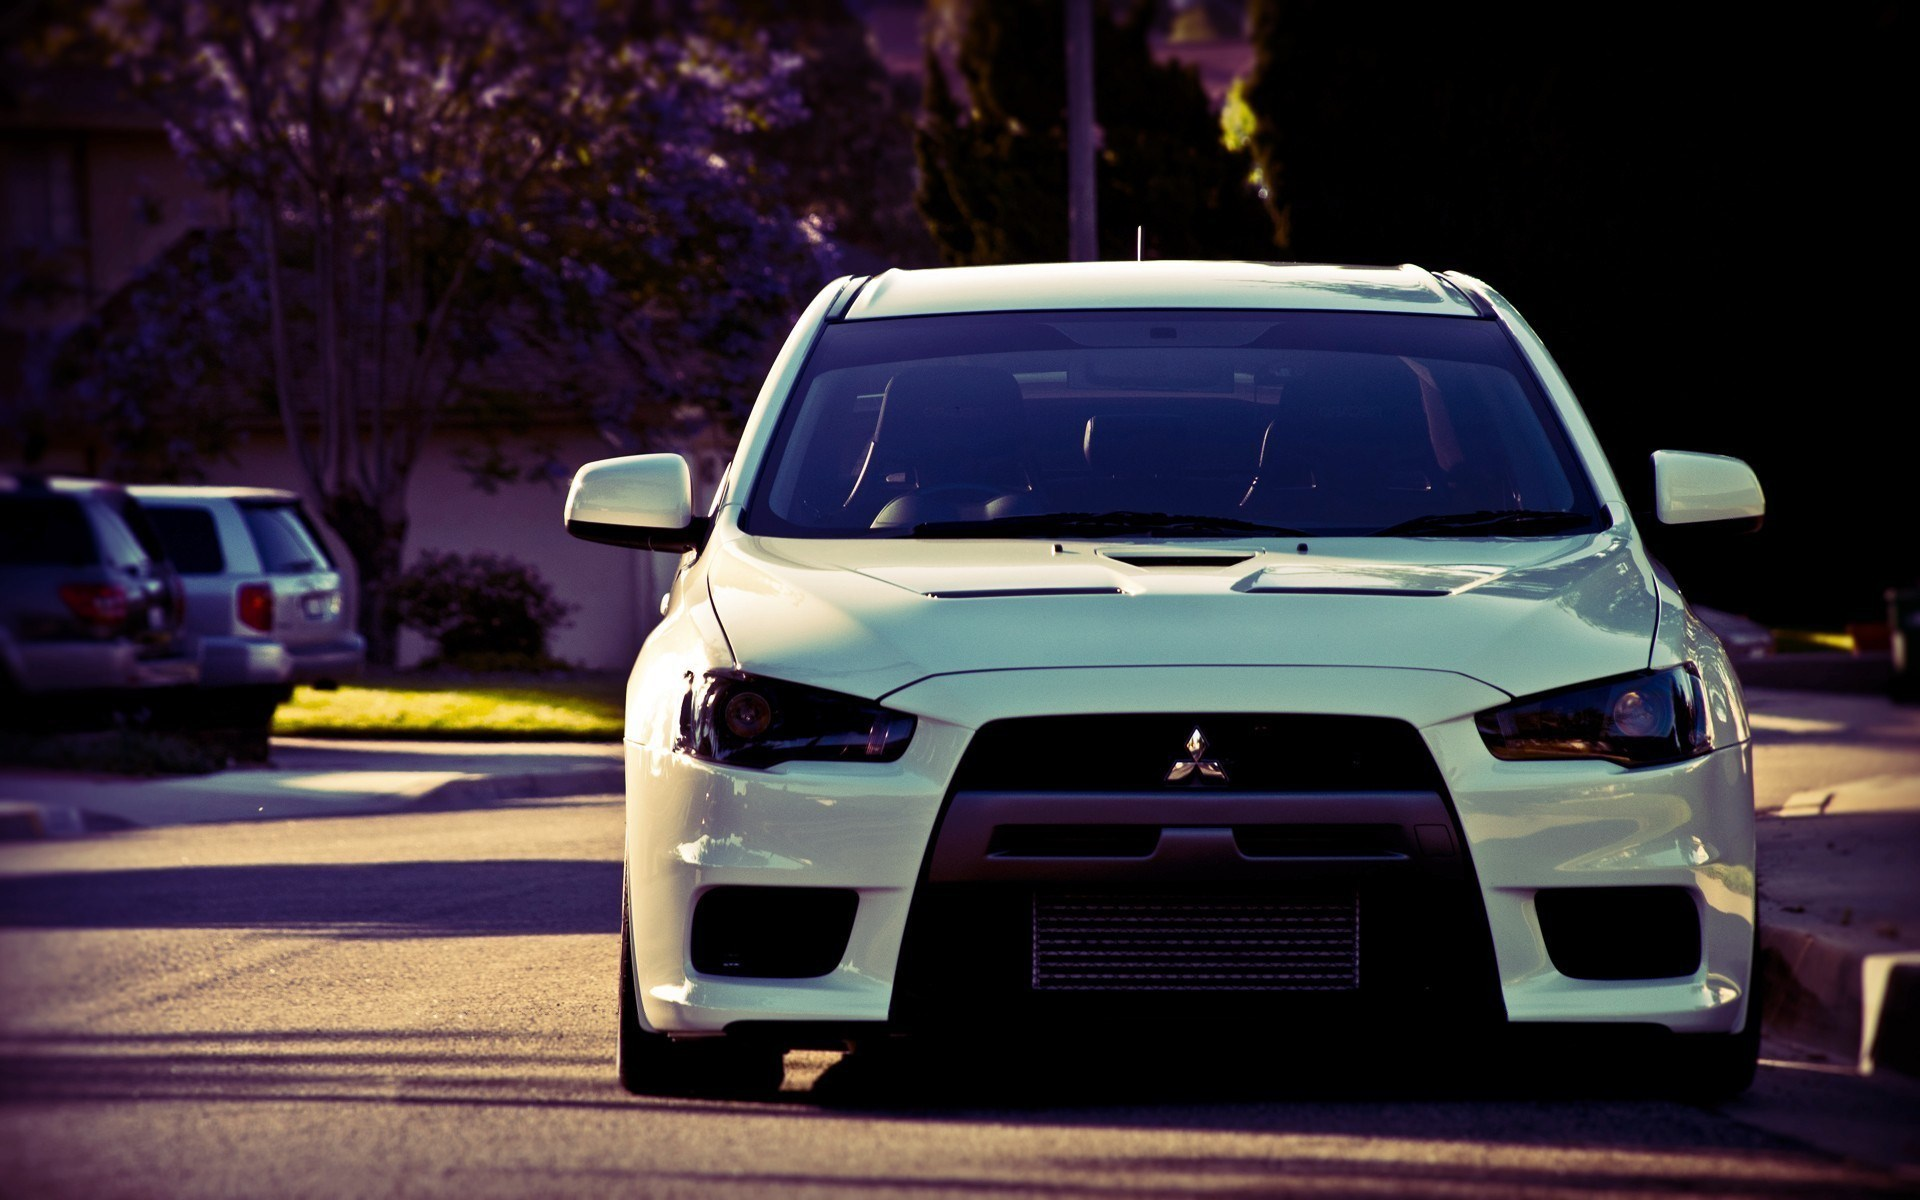 Mitsubishi Lancer Evolution X Parking